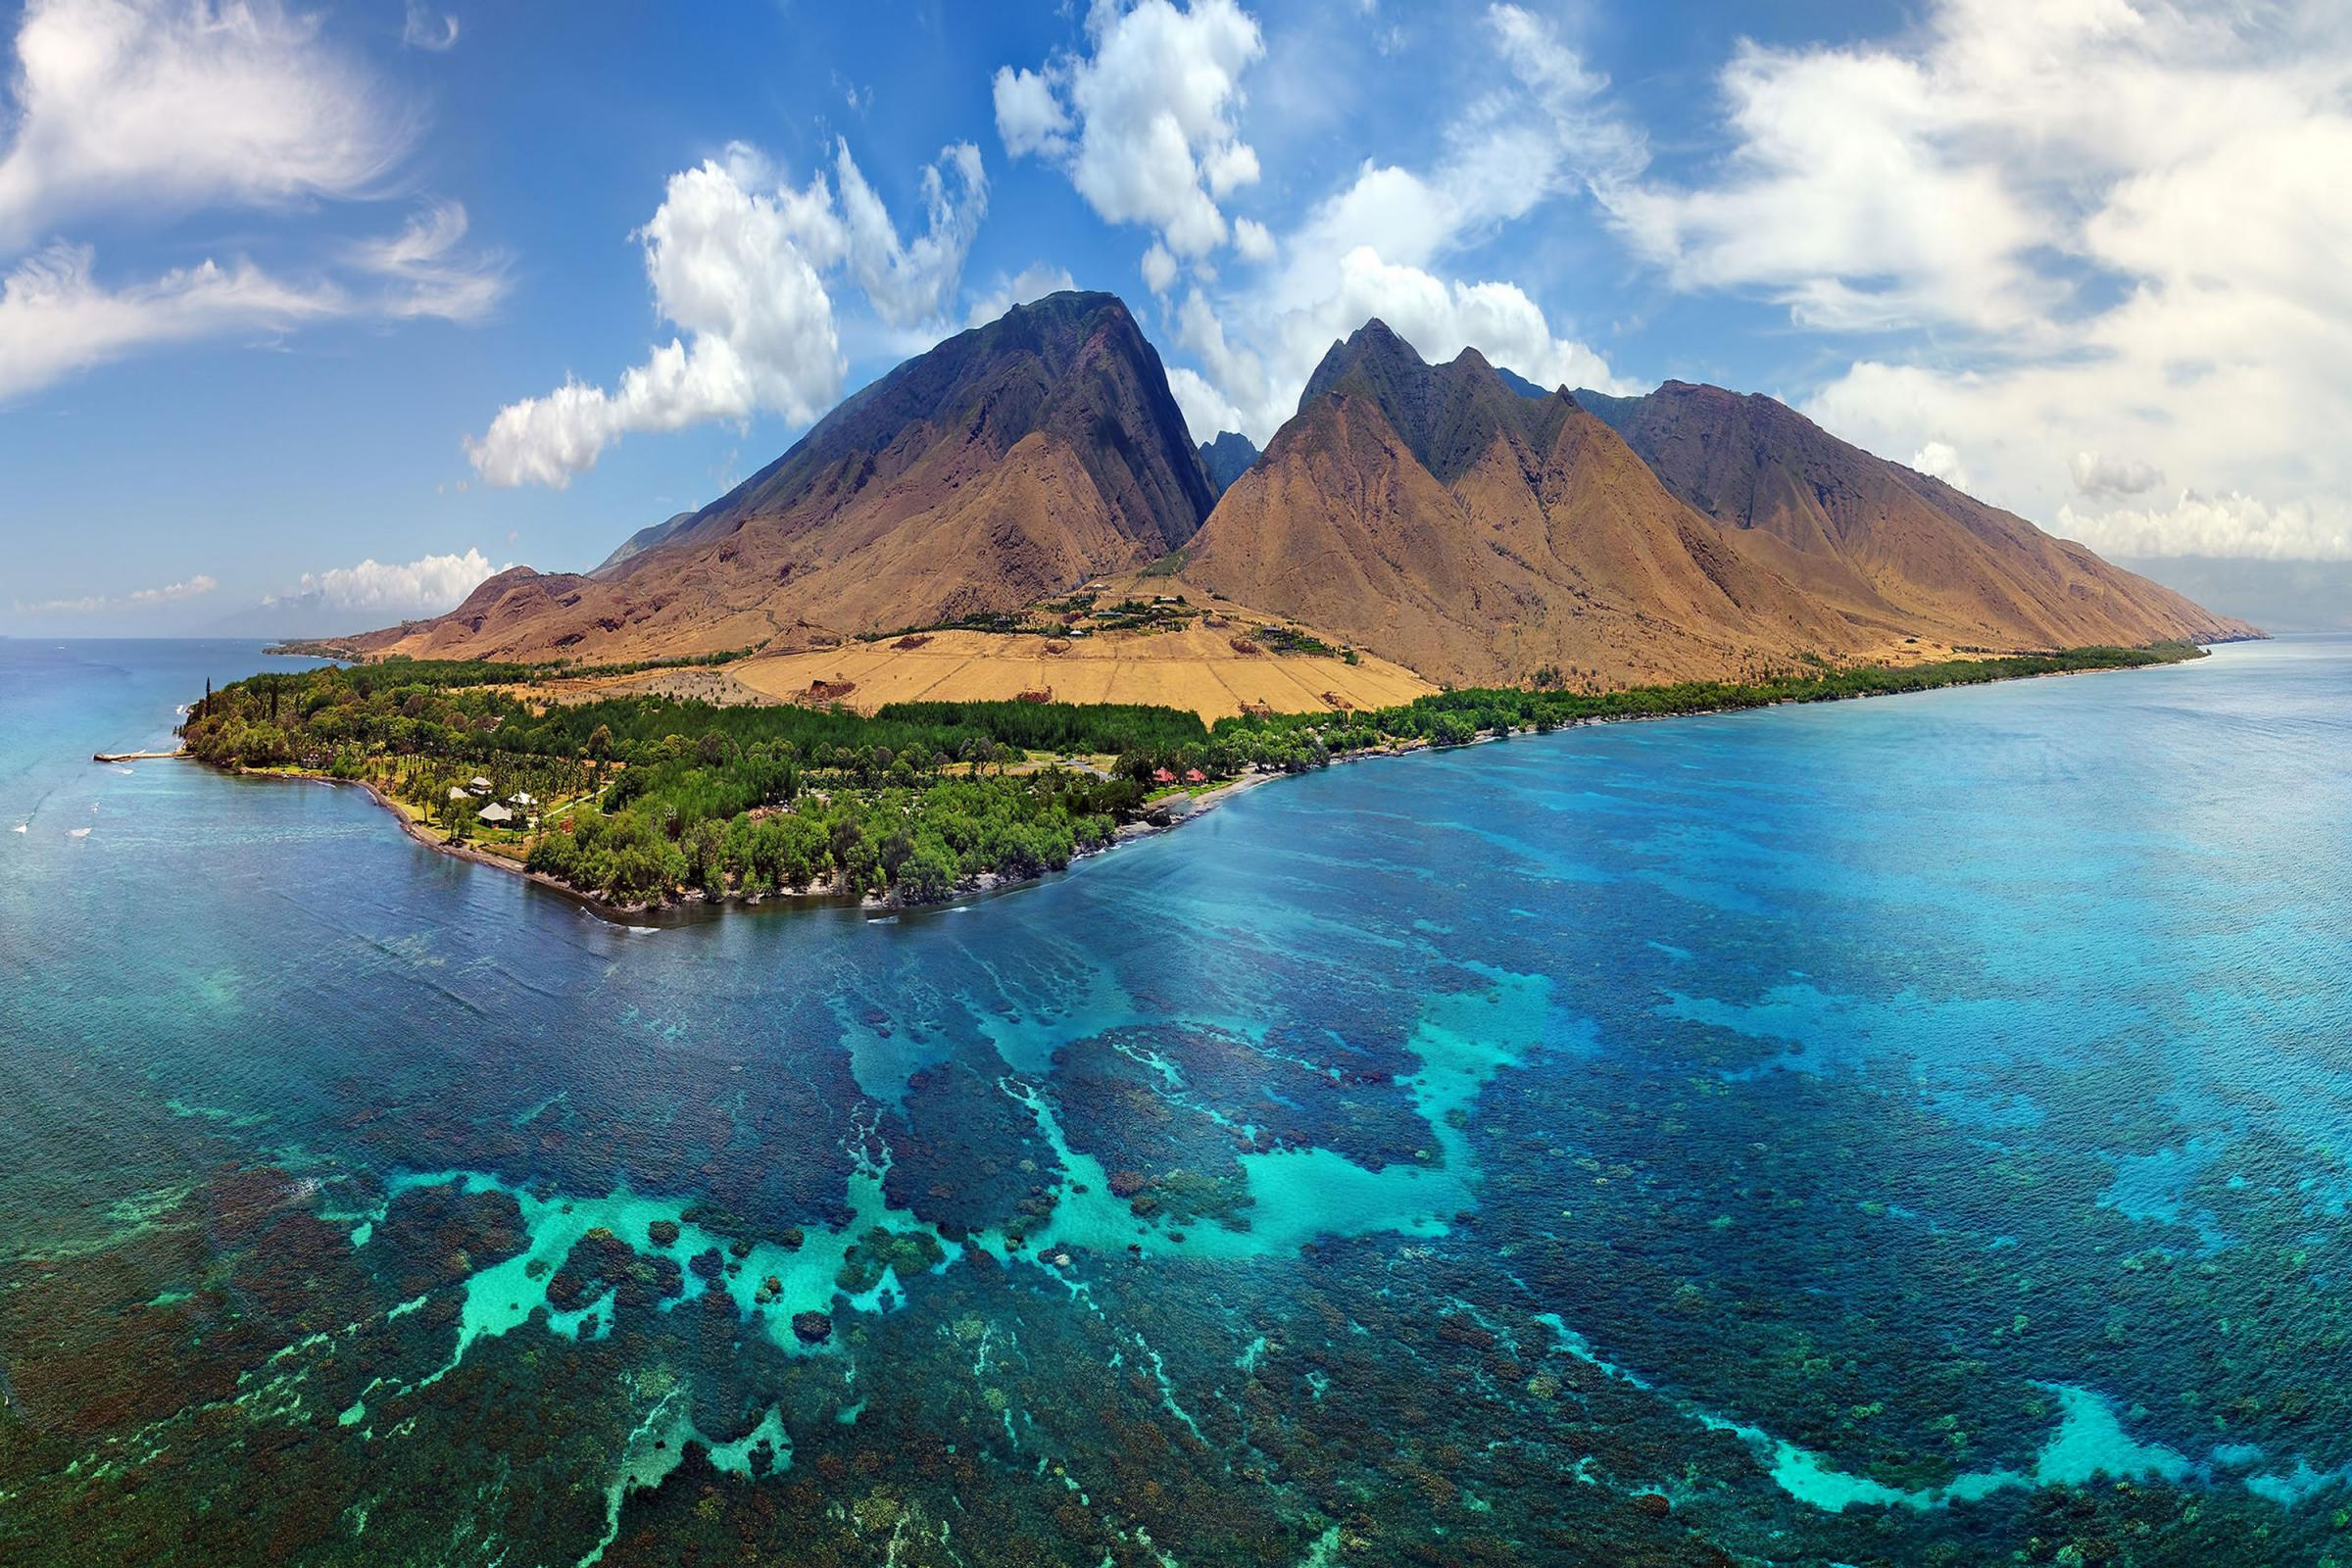 A tropical, mountainous island surrounded by clear turquoise waters with visible coral reefs below the surface